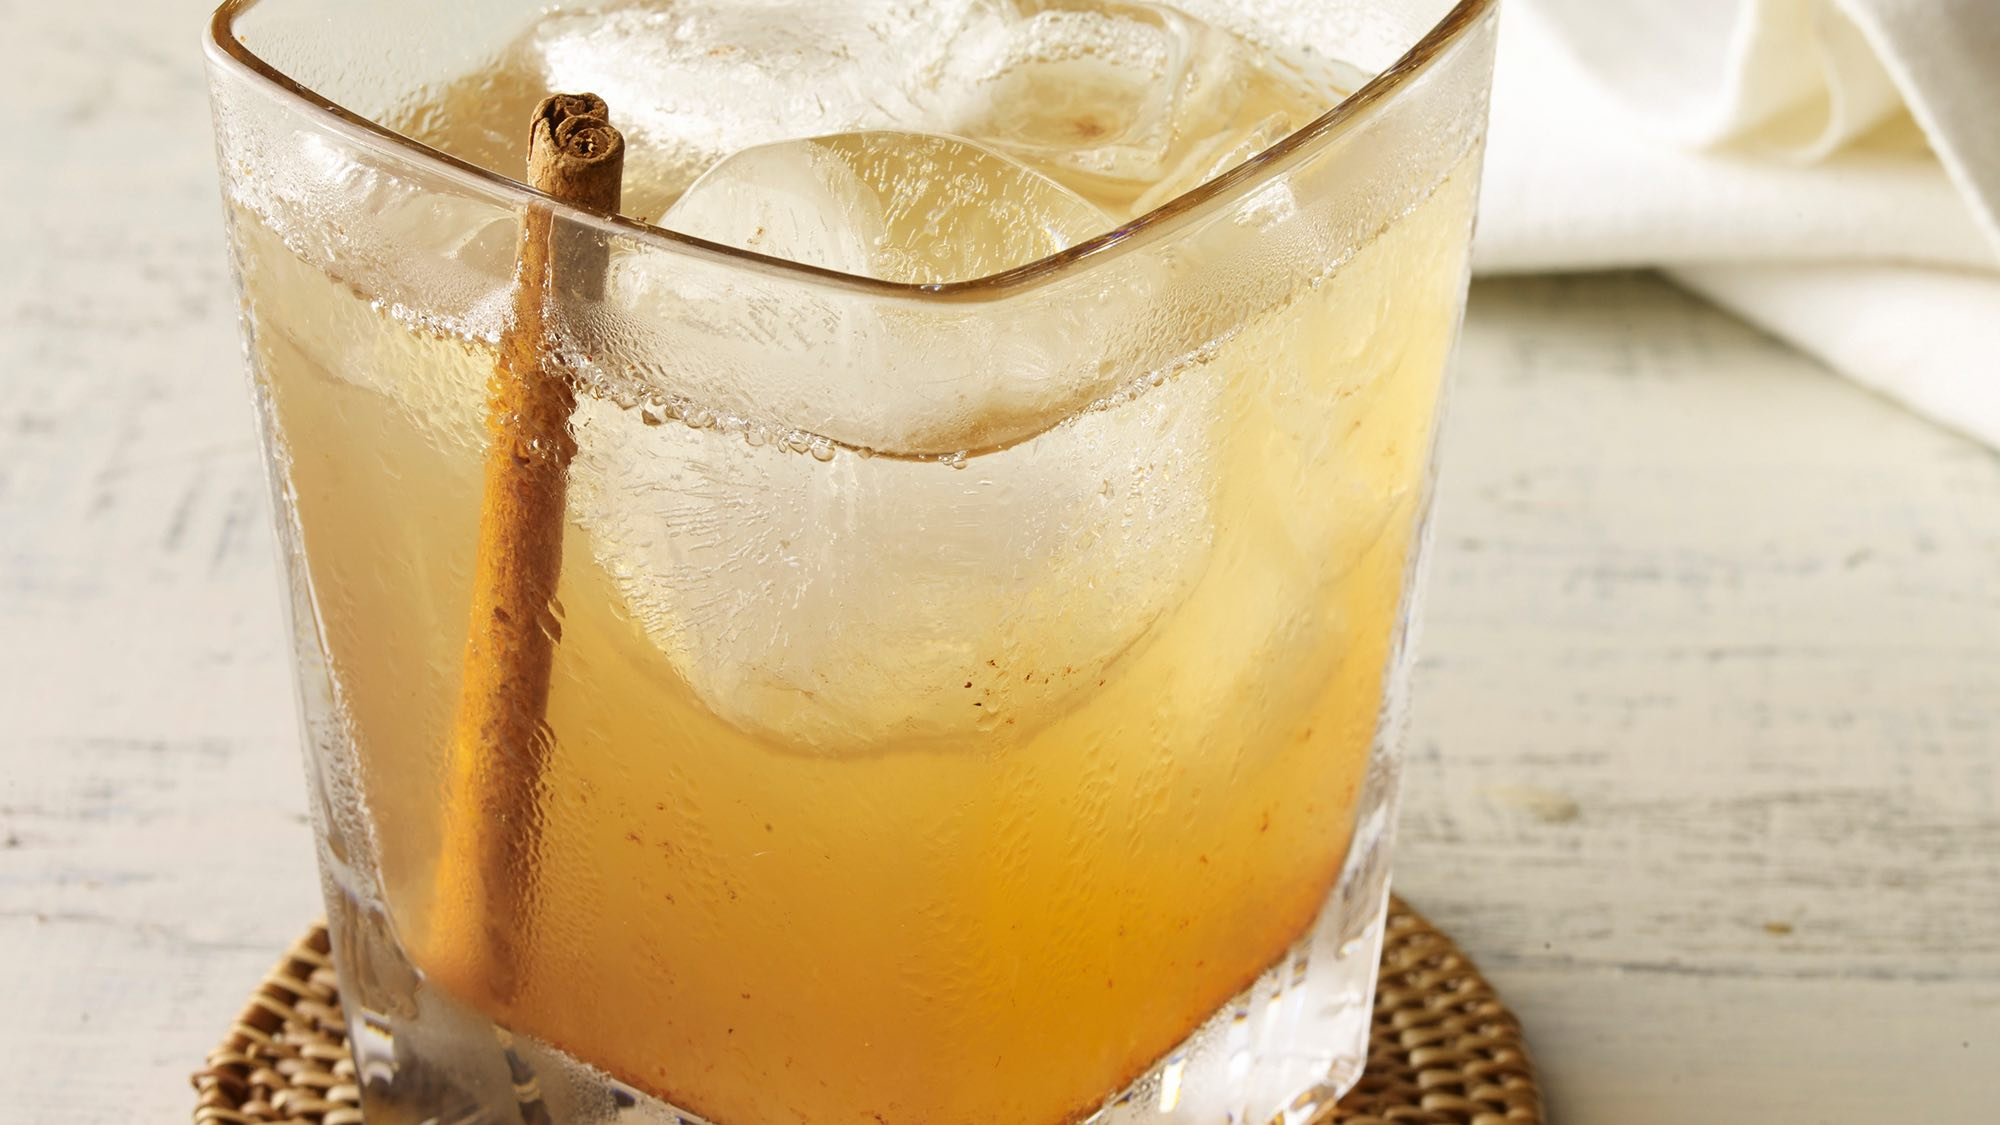 McCormick Peachy Bourbon with Cinnamon Bitters